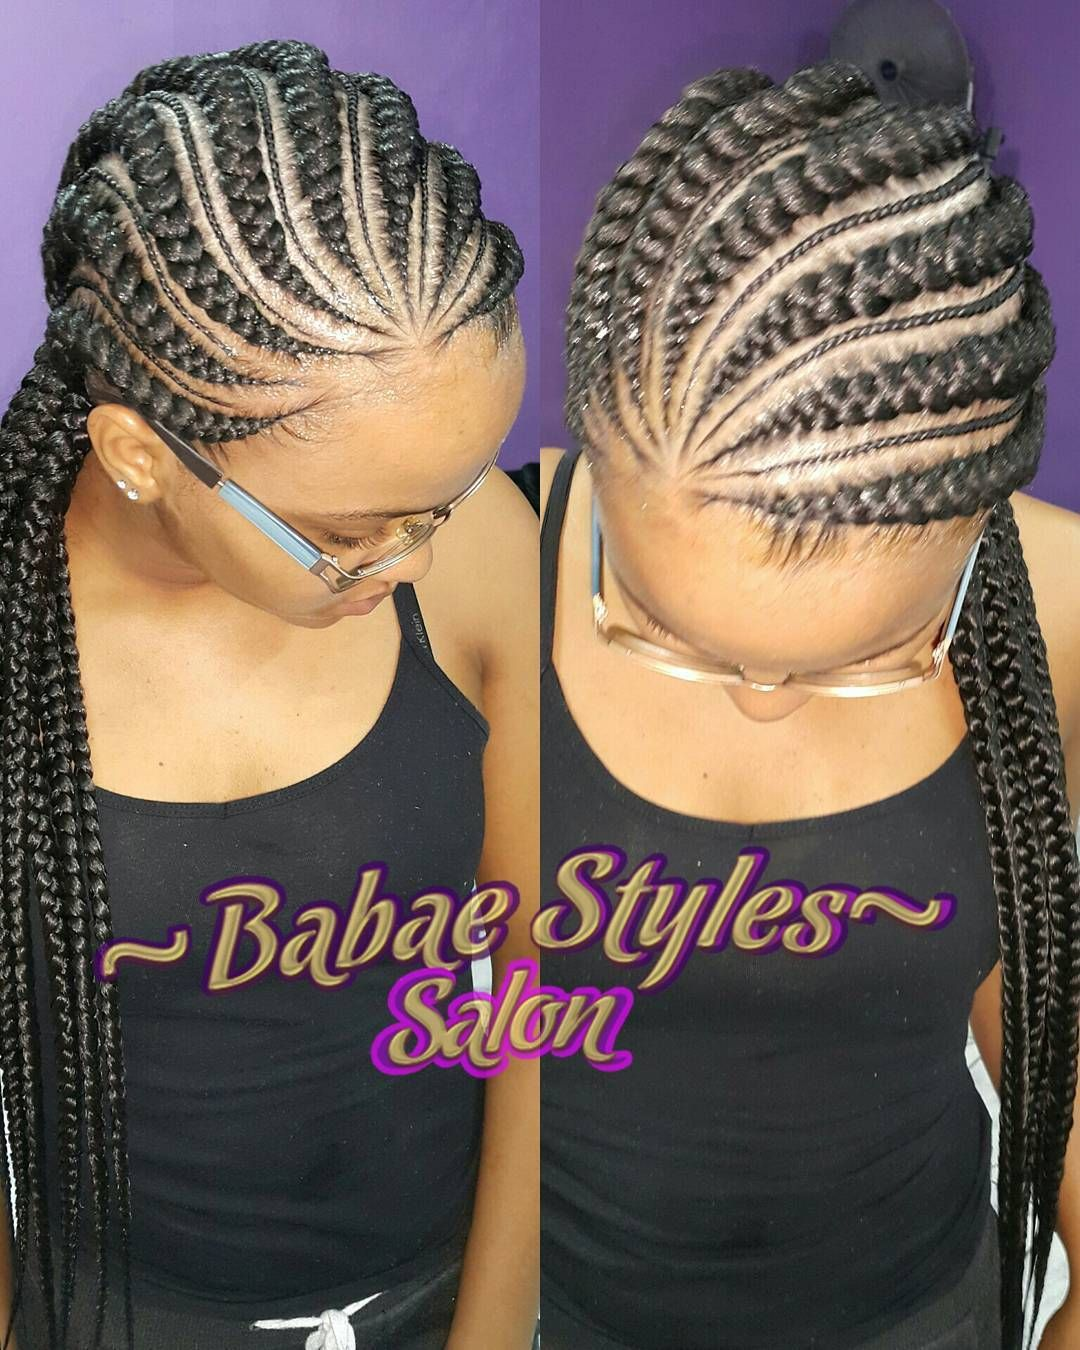 """Babae Styles Sálon on Instagram """"BRAIDS 😍😍😍babaestylessalon ❤ whatsapp or call us at 3718400 OR 8745937 appointmentsonly we raising BARS 📈 📈🎯🎯😉"""""""